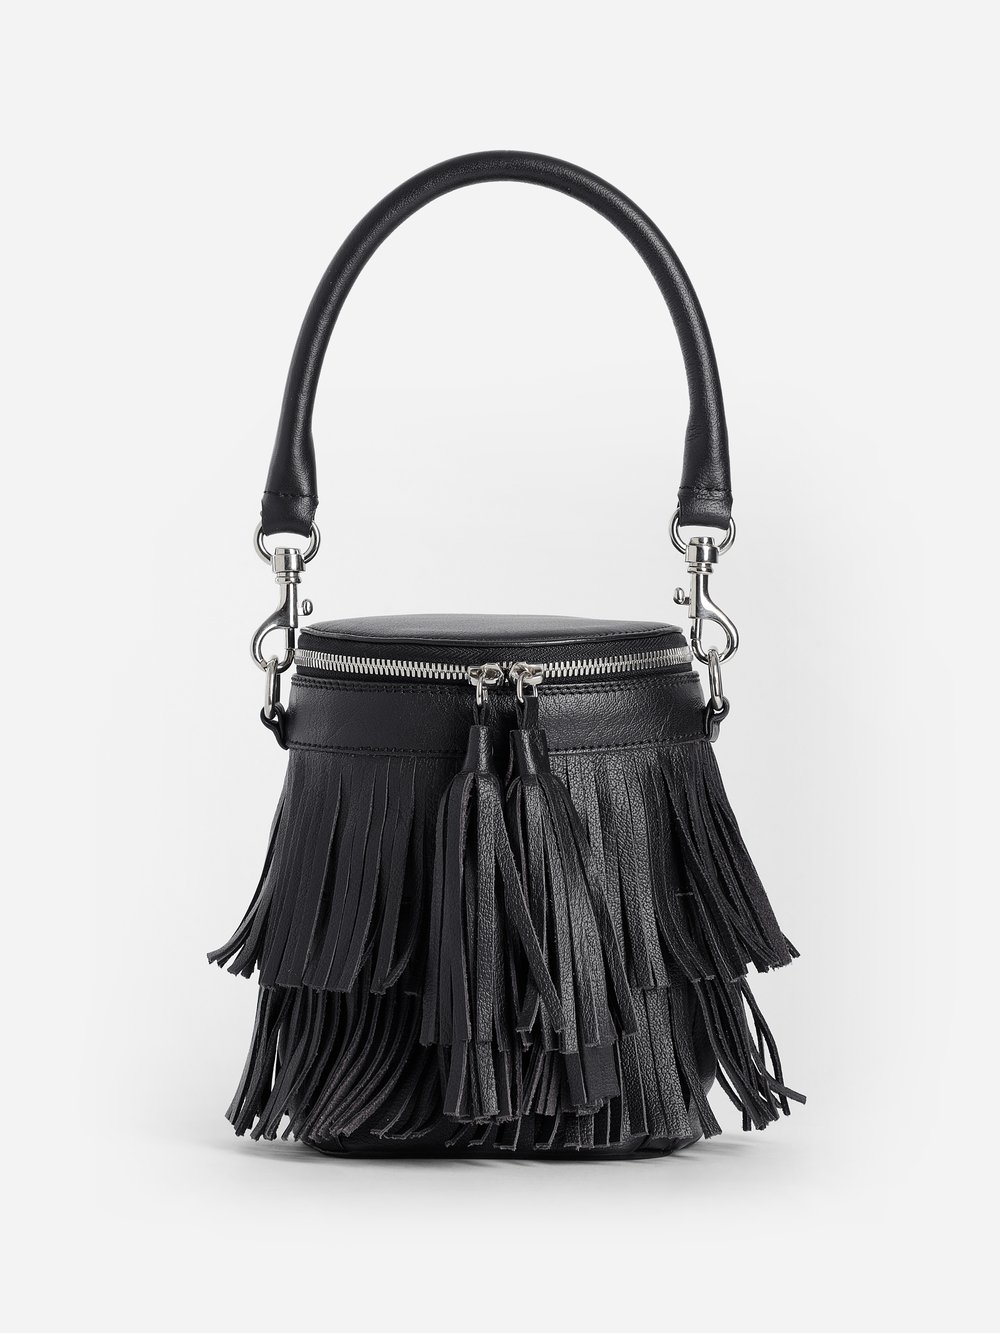 Image of Andrea Incontri Top Handle Bags